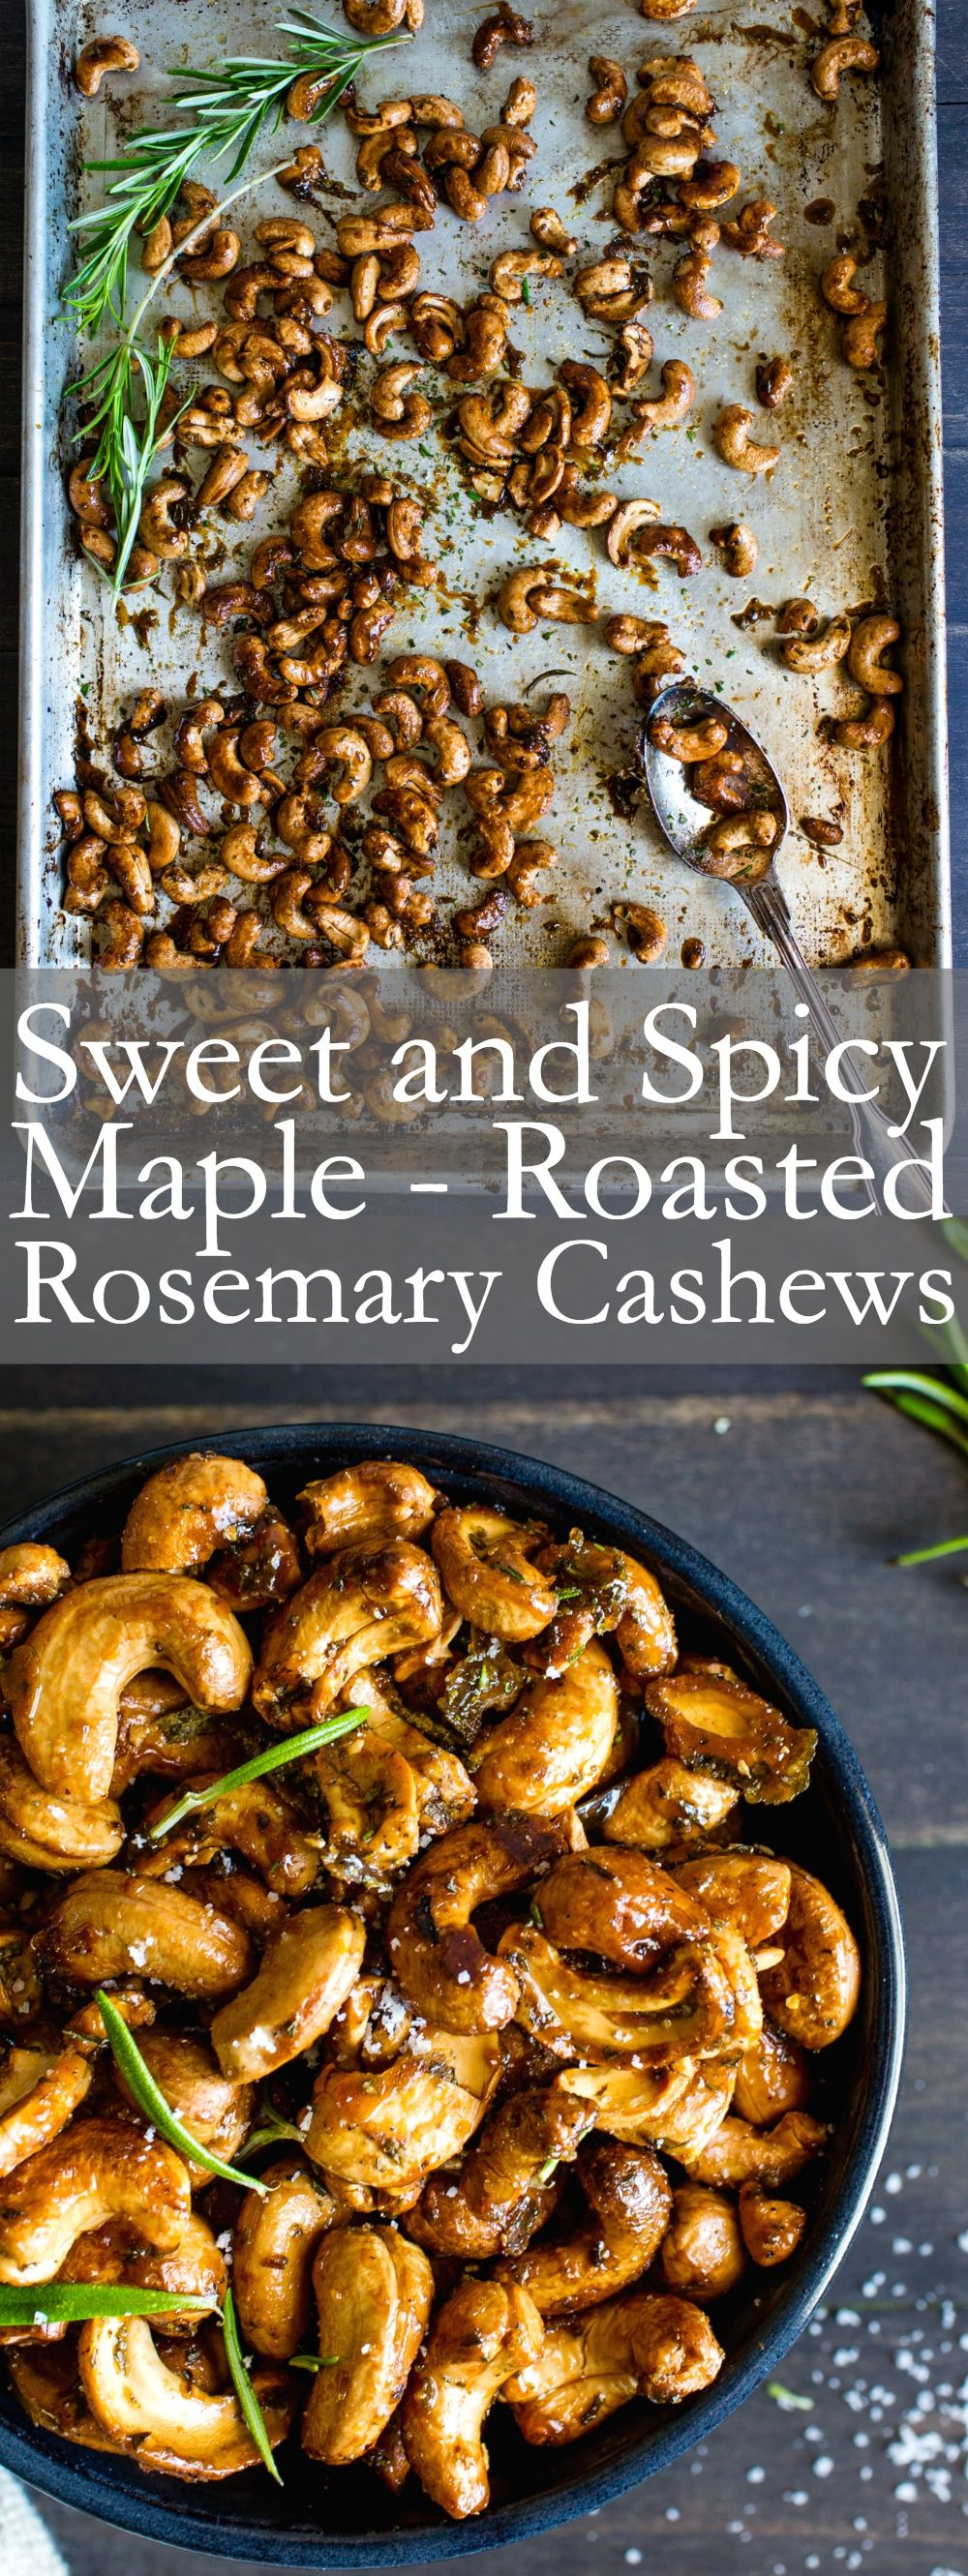 Recipe Video Sweet and Spicy MapleRoasted Rosemary